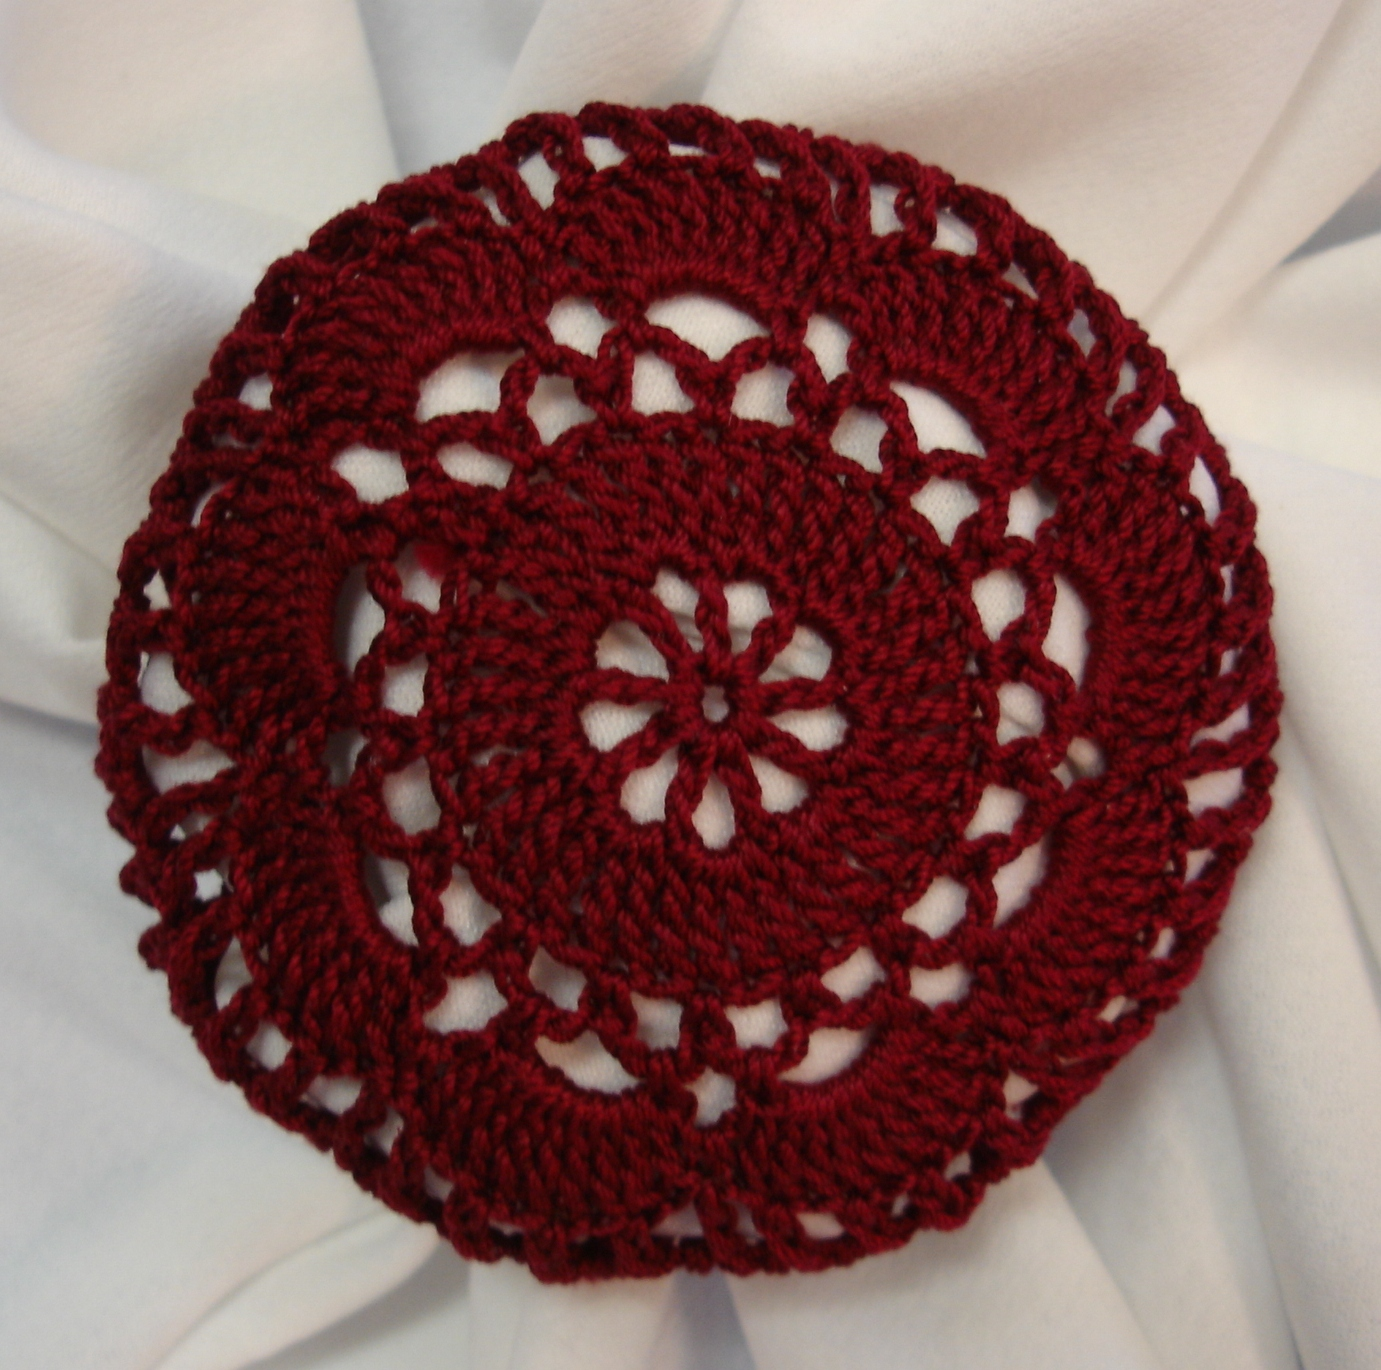 Crochet Hair Net Bun Cover Pattern : Burgundy Crocheted Hair Net Bun Cover Amish Mennonite merrydeals4u